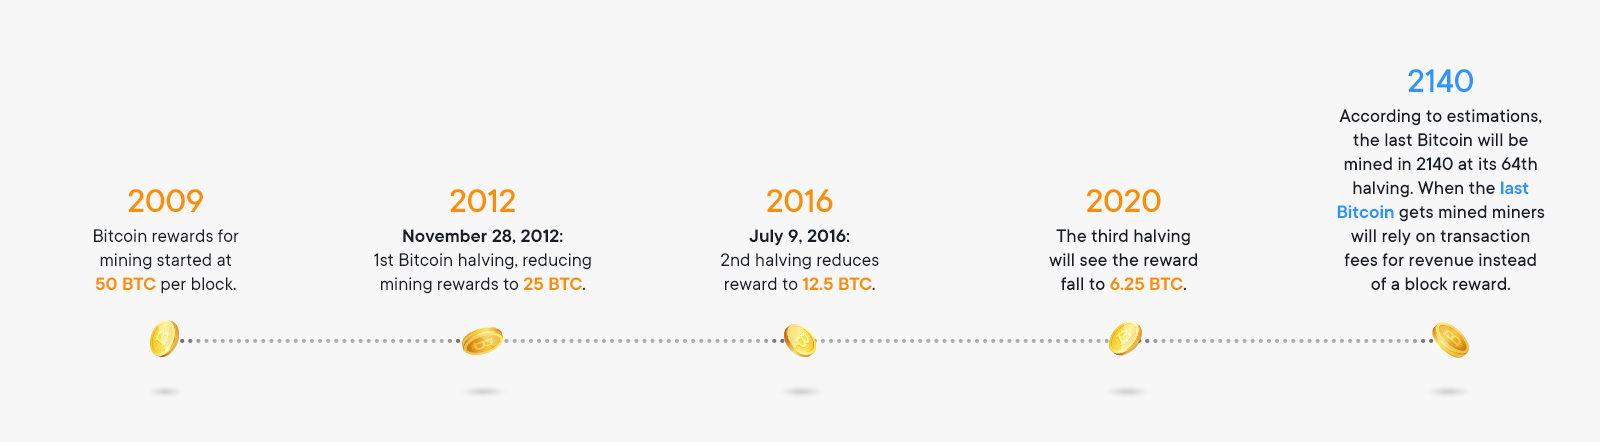 Bitcoin Halving Timeline History